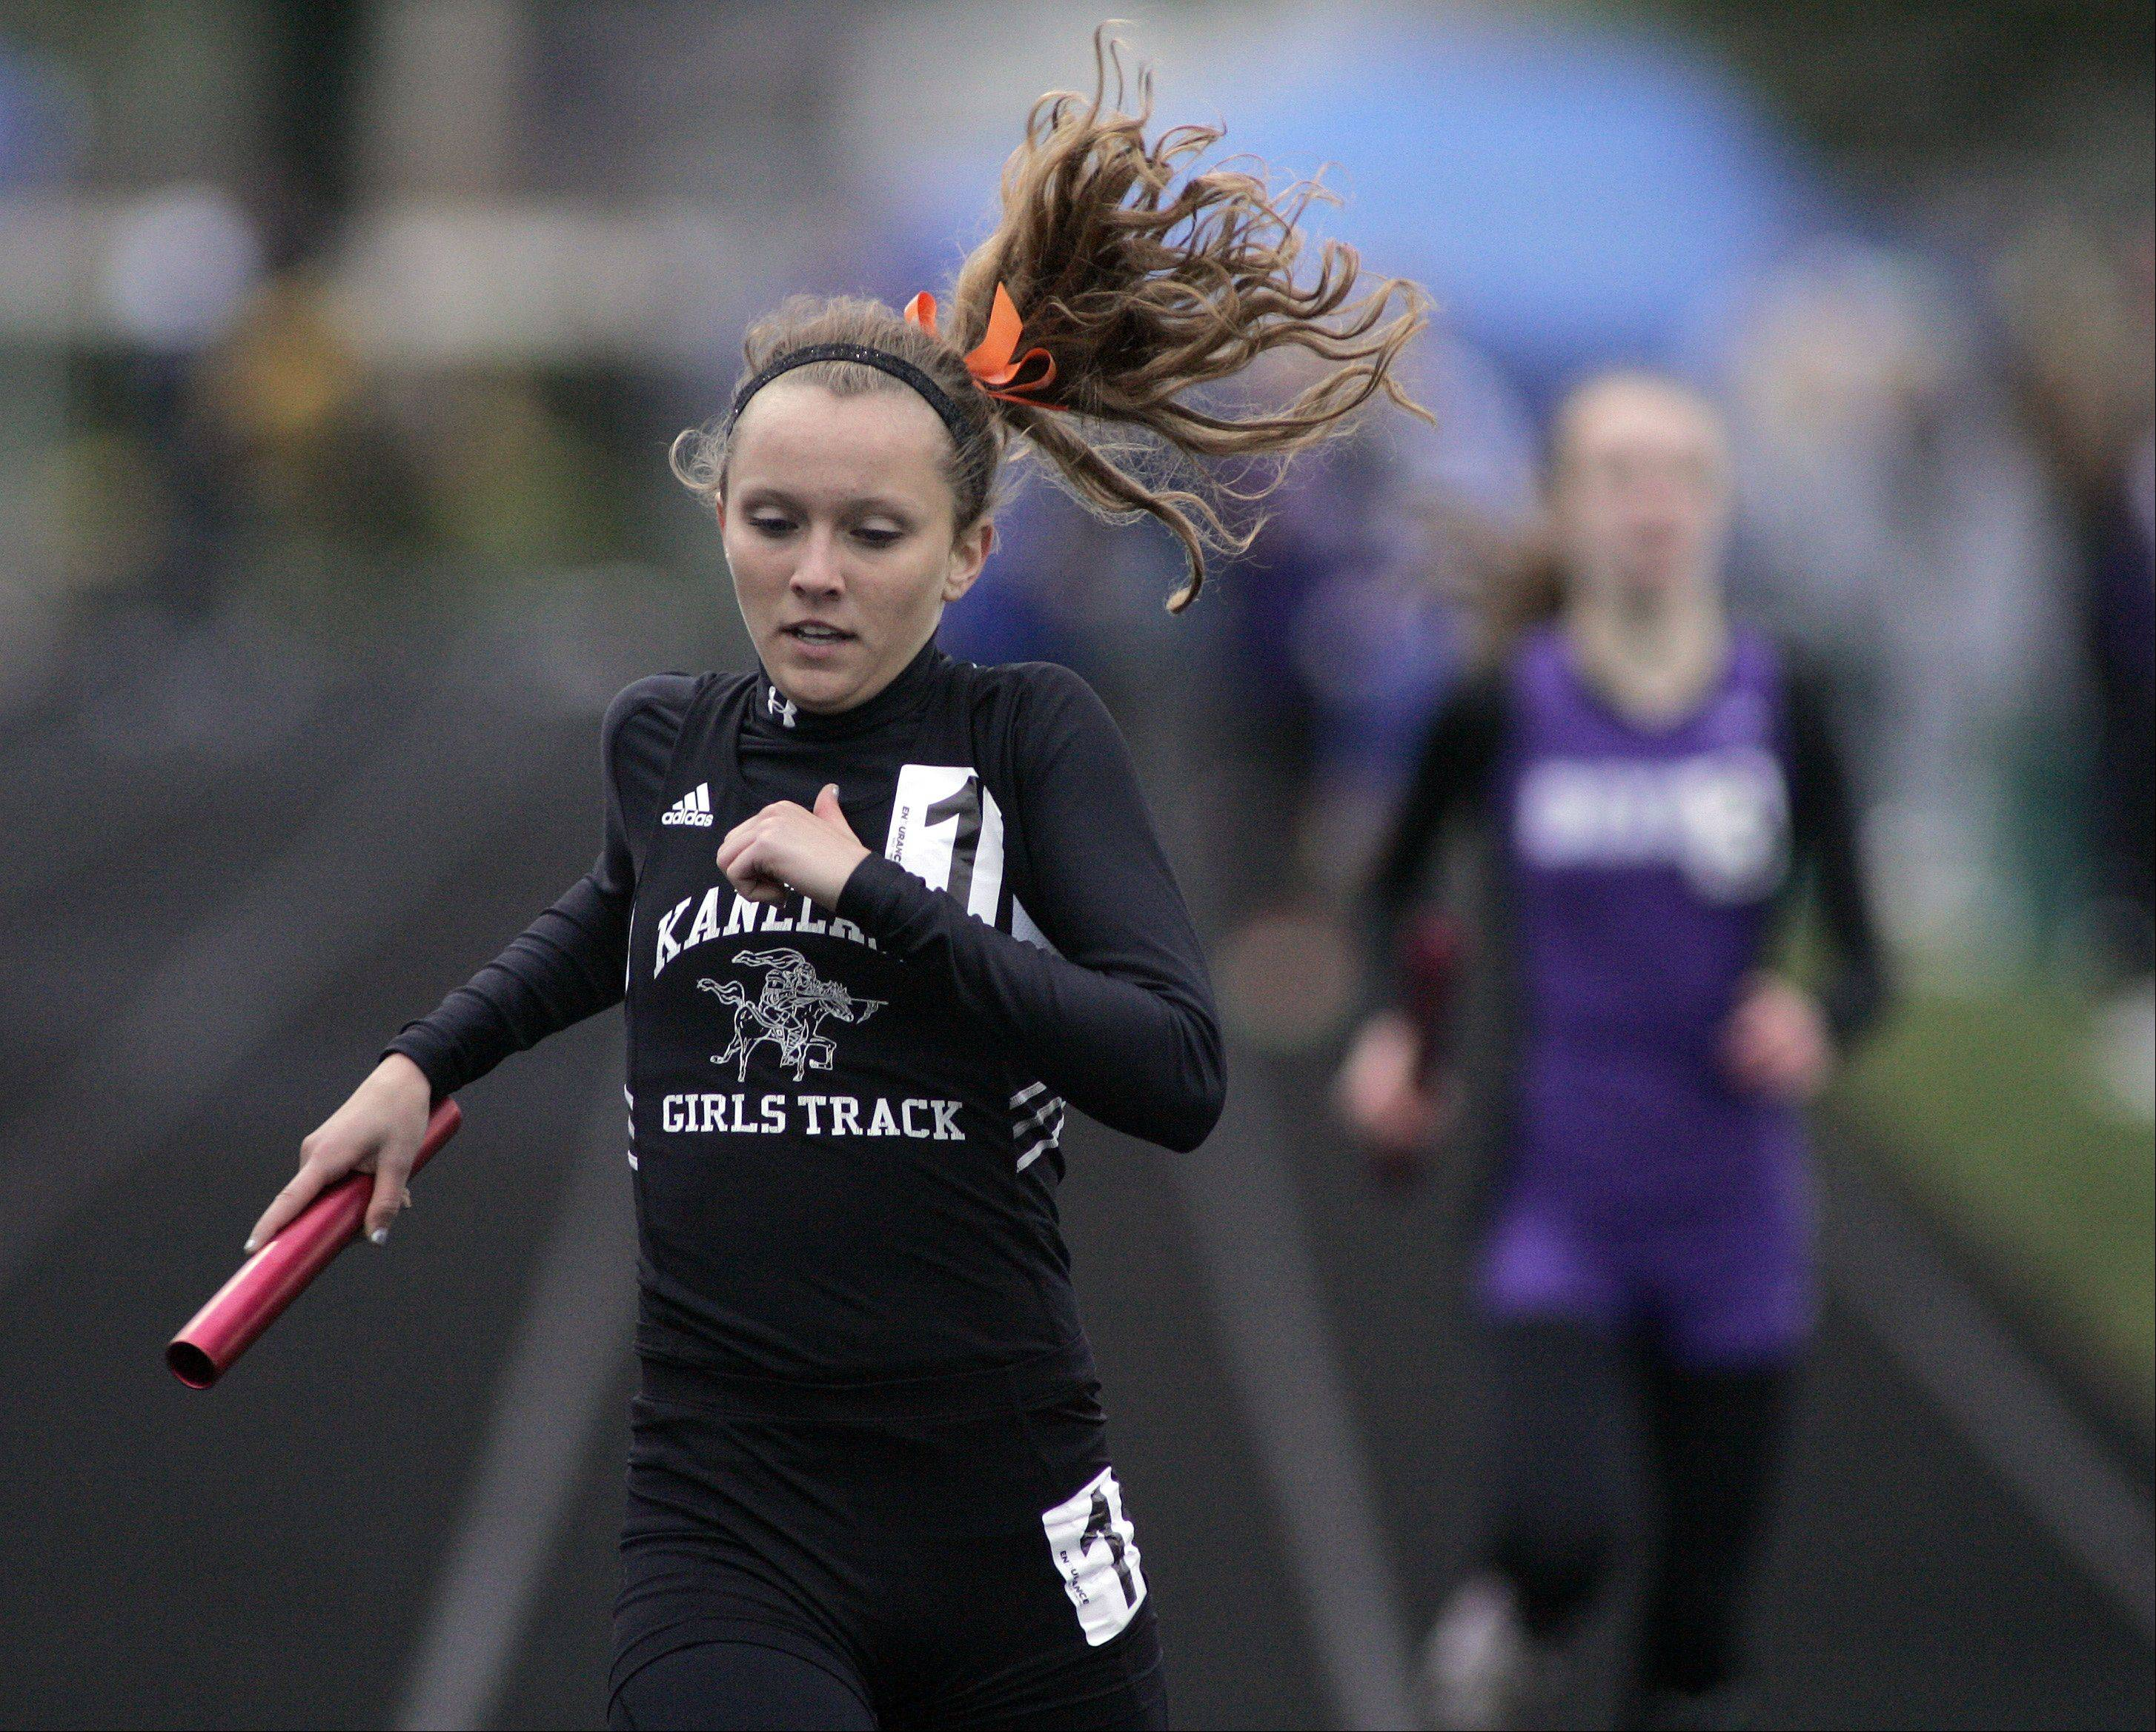 Kaneland competes in the 4x800 meter relay during the Burlington Central girls track sectional Friday.